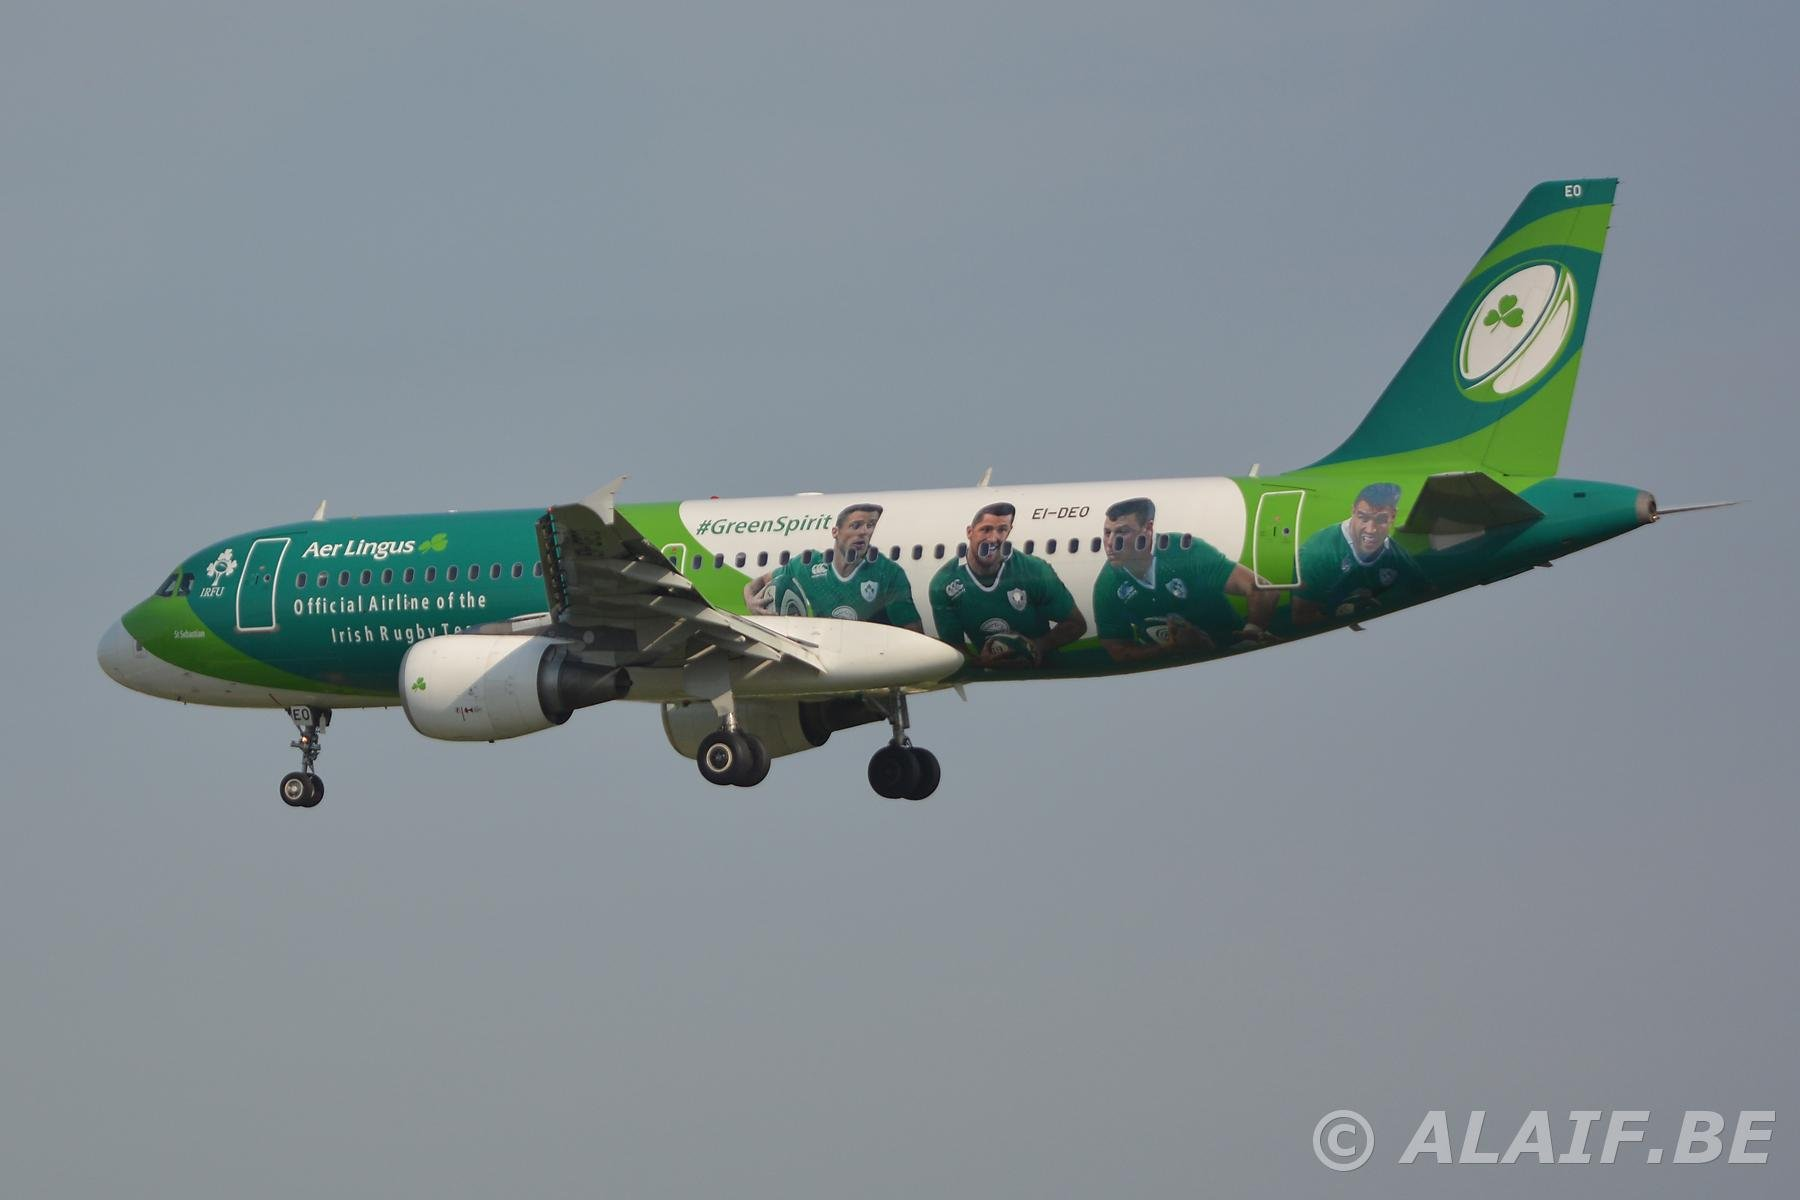 Aer Lingus Airbus A320 EI-DEO Official aircraft of the Irish rugby team.